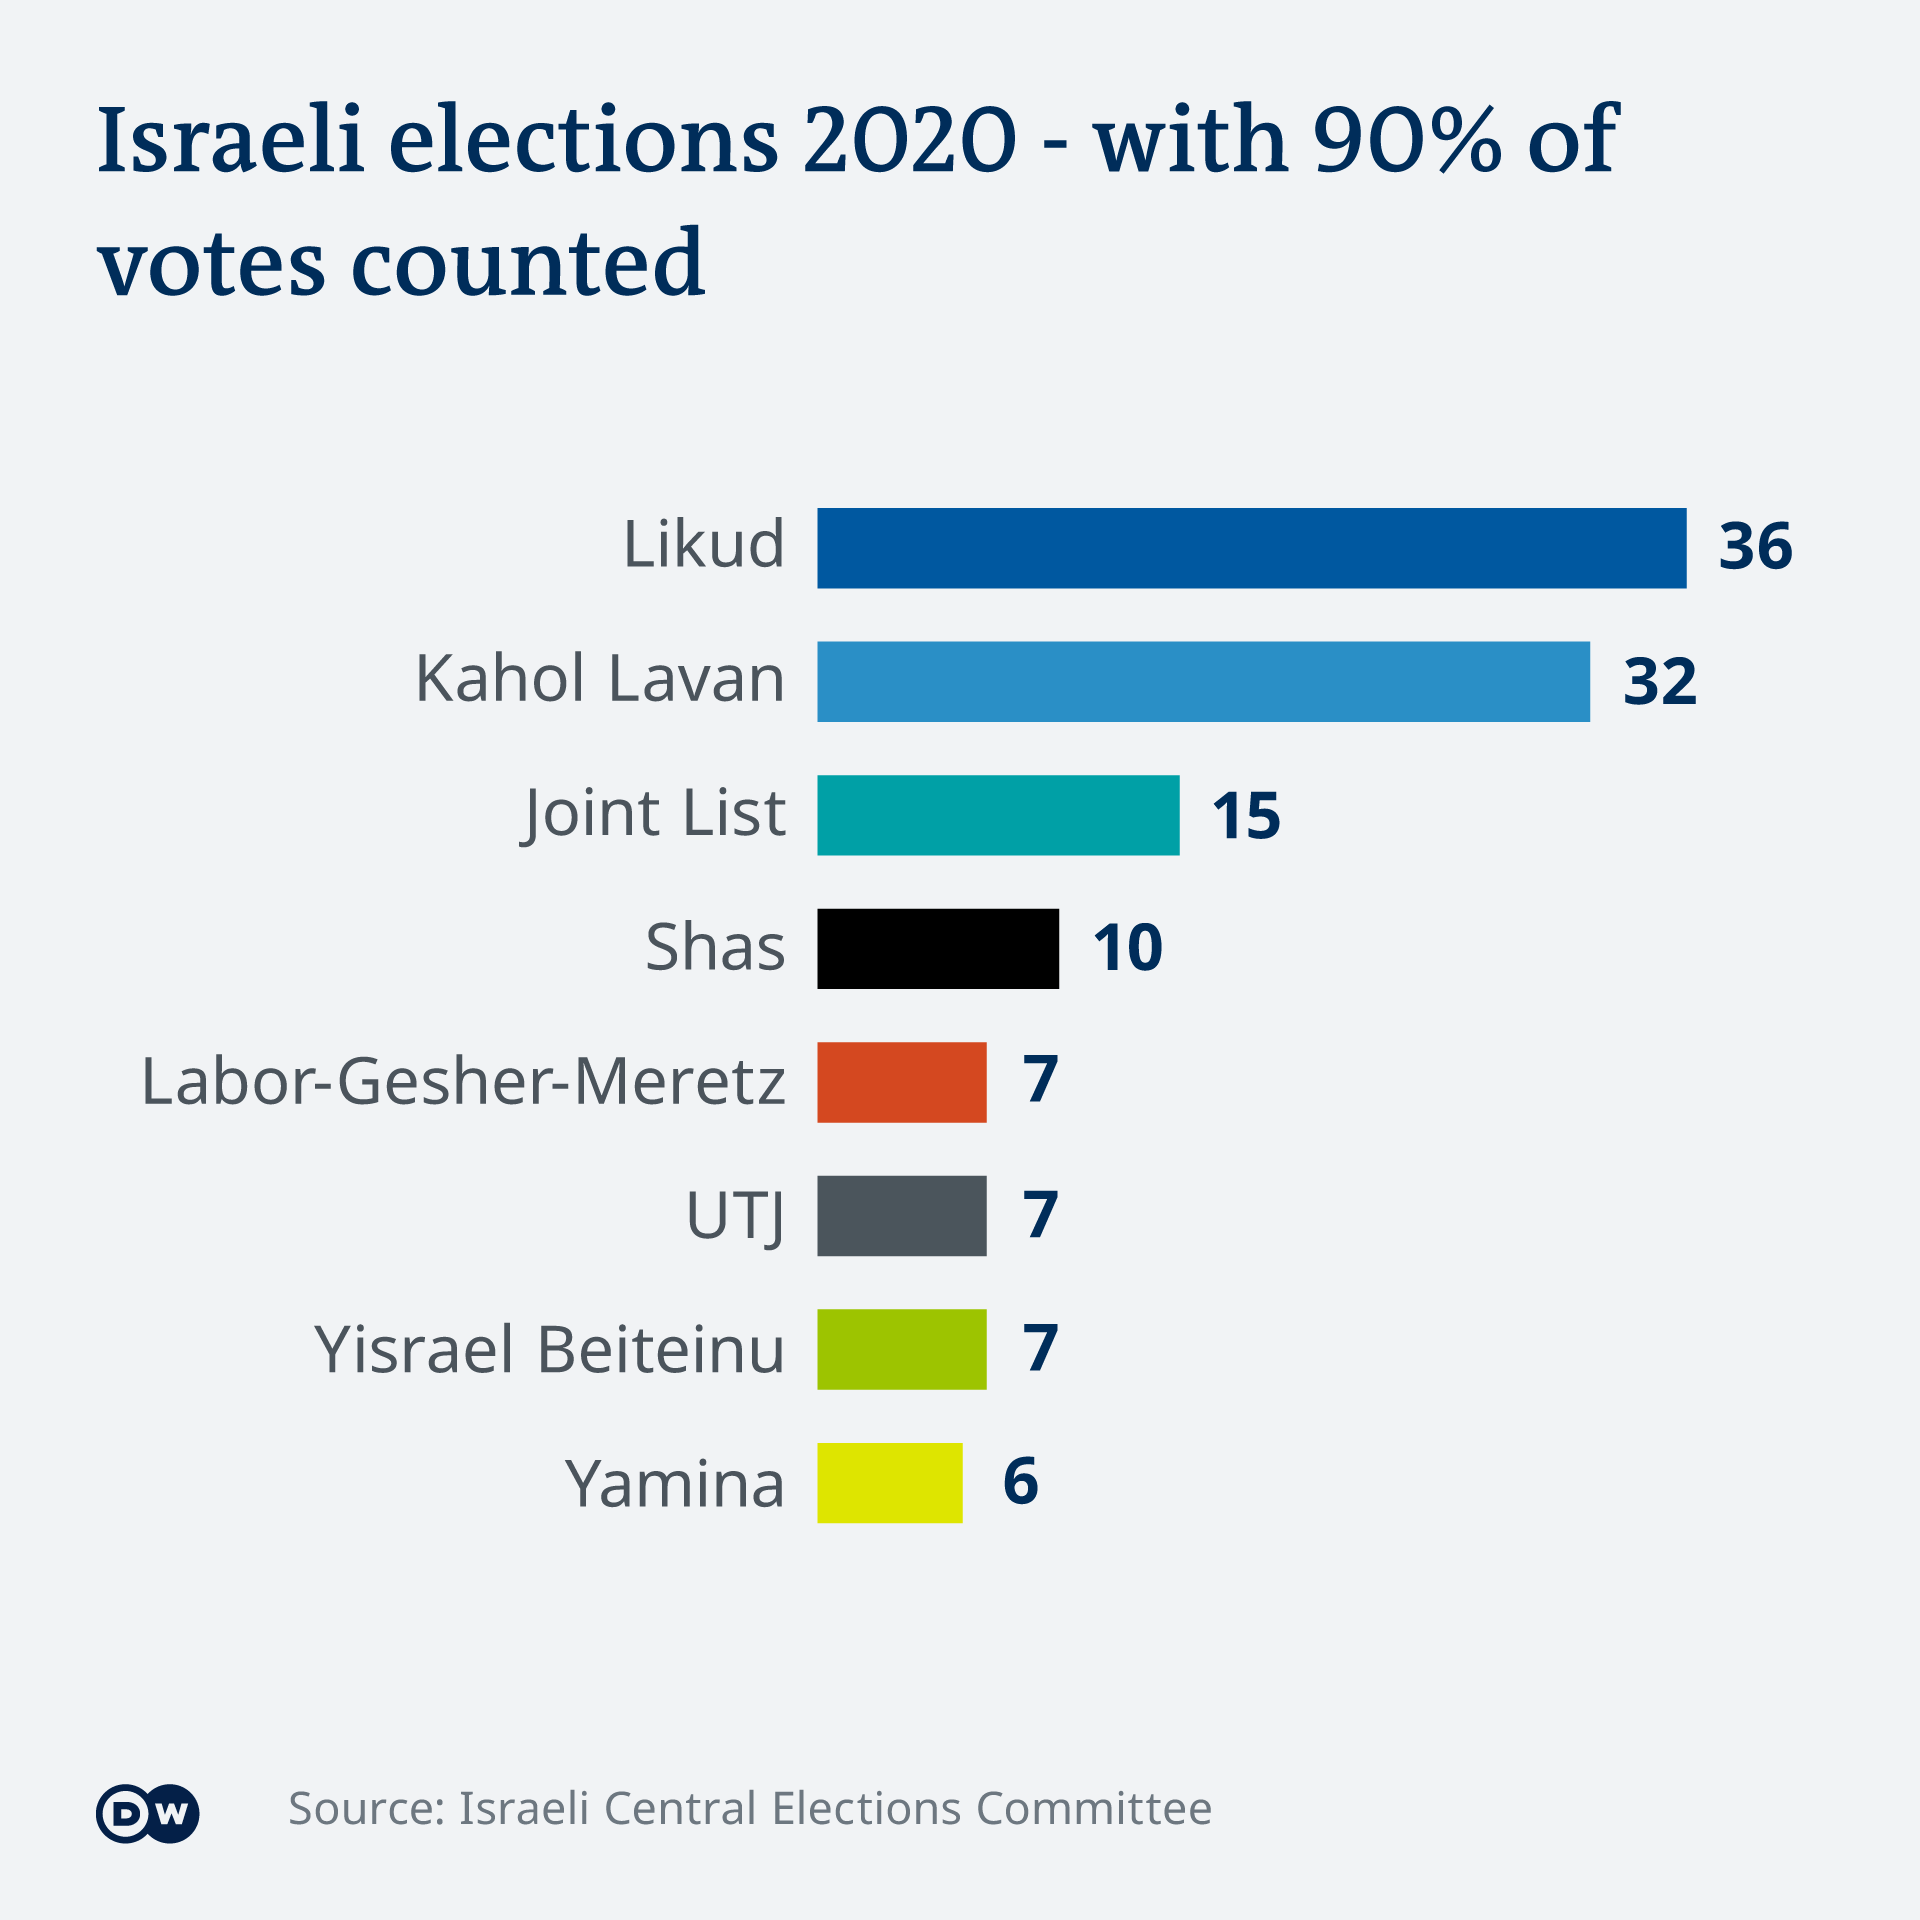 Results of the Israeli election